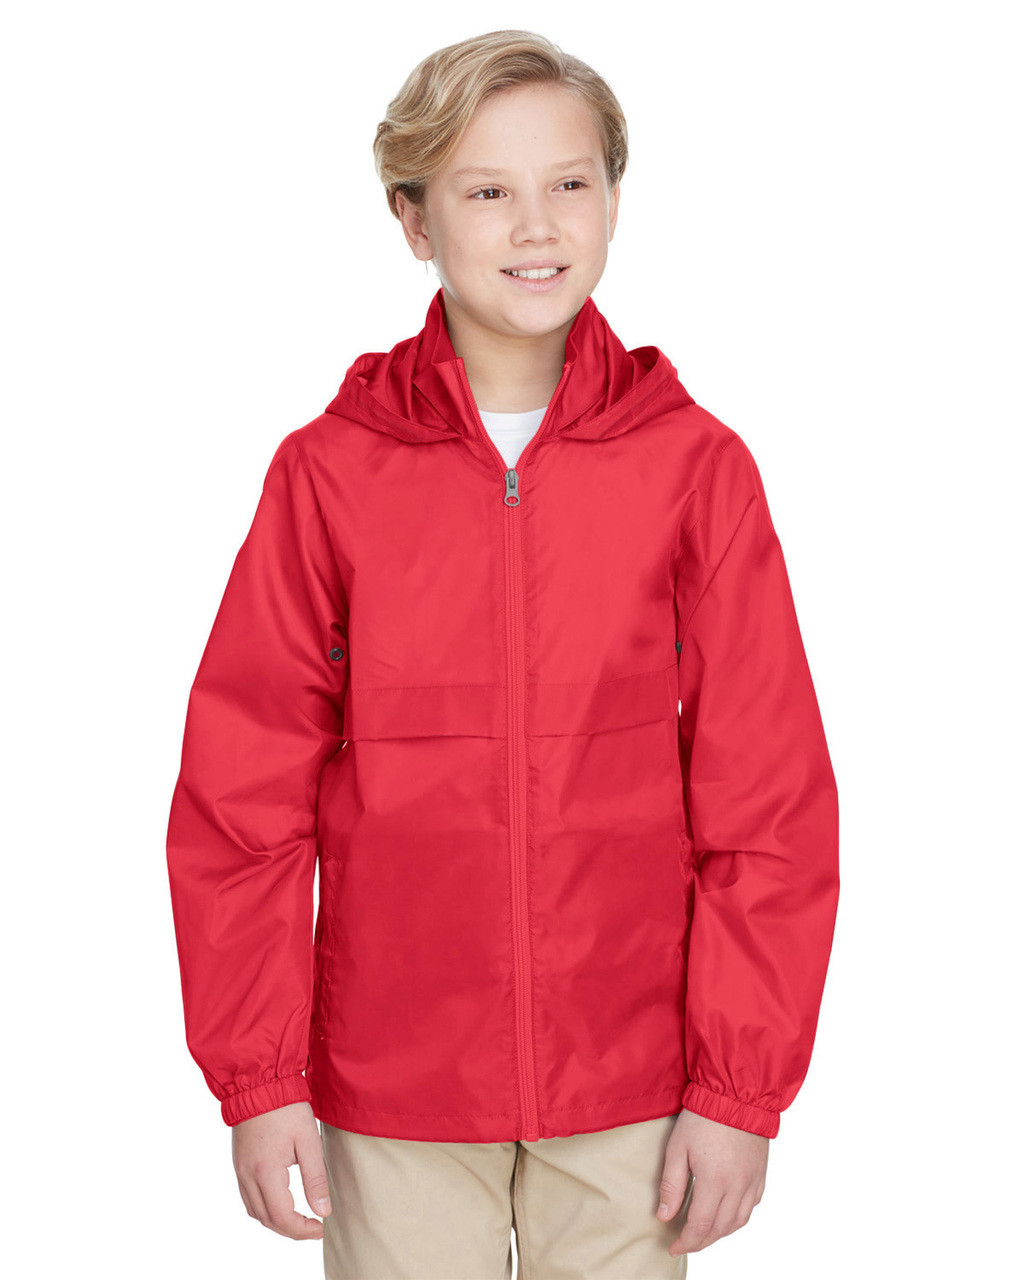 Sport Red - TT73Y Team 365 Youth Zone Protect Lightweight Jacket  | BlankClothing.ca